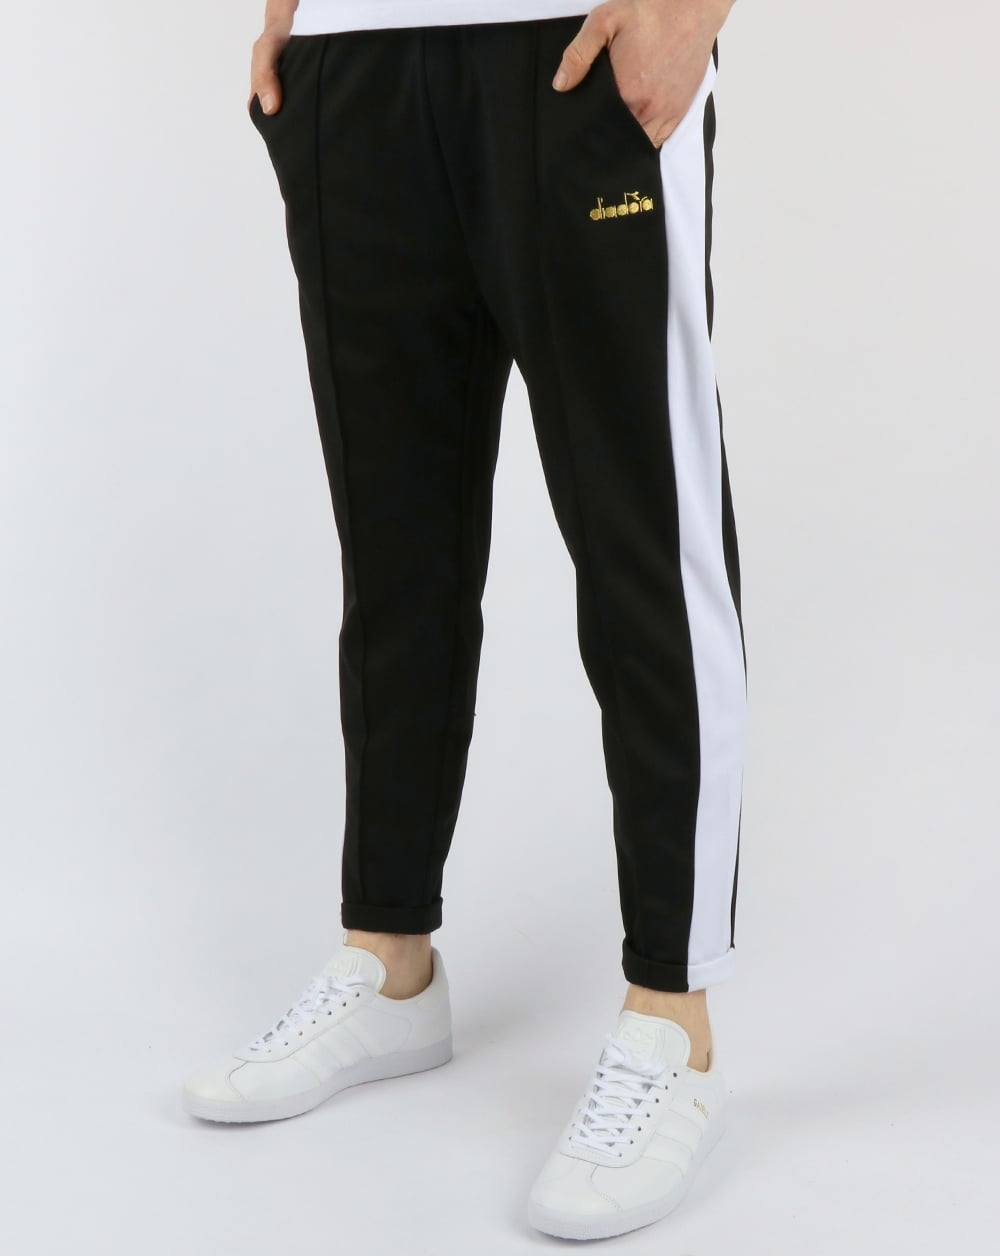 1a4964b0c Diadora 80s Cropped Track Pants Black,tracksuit,bottoms,shiny,mens